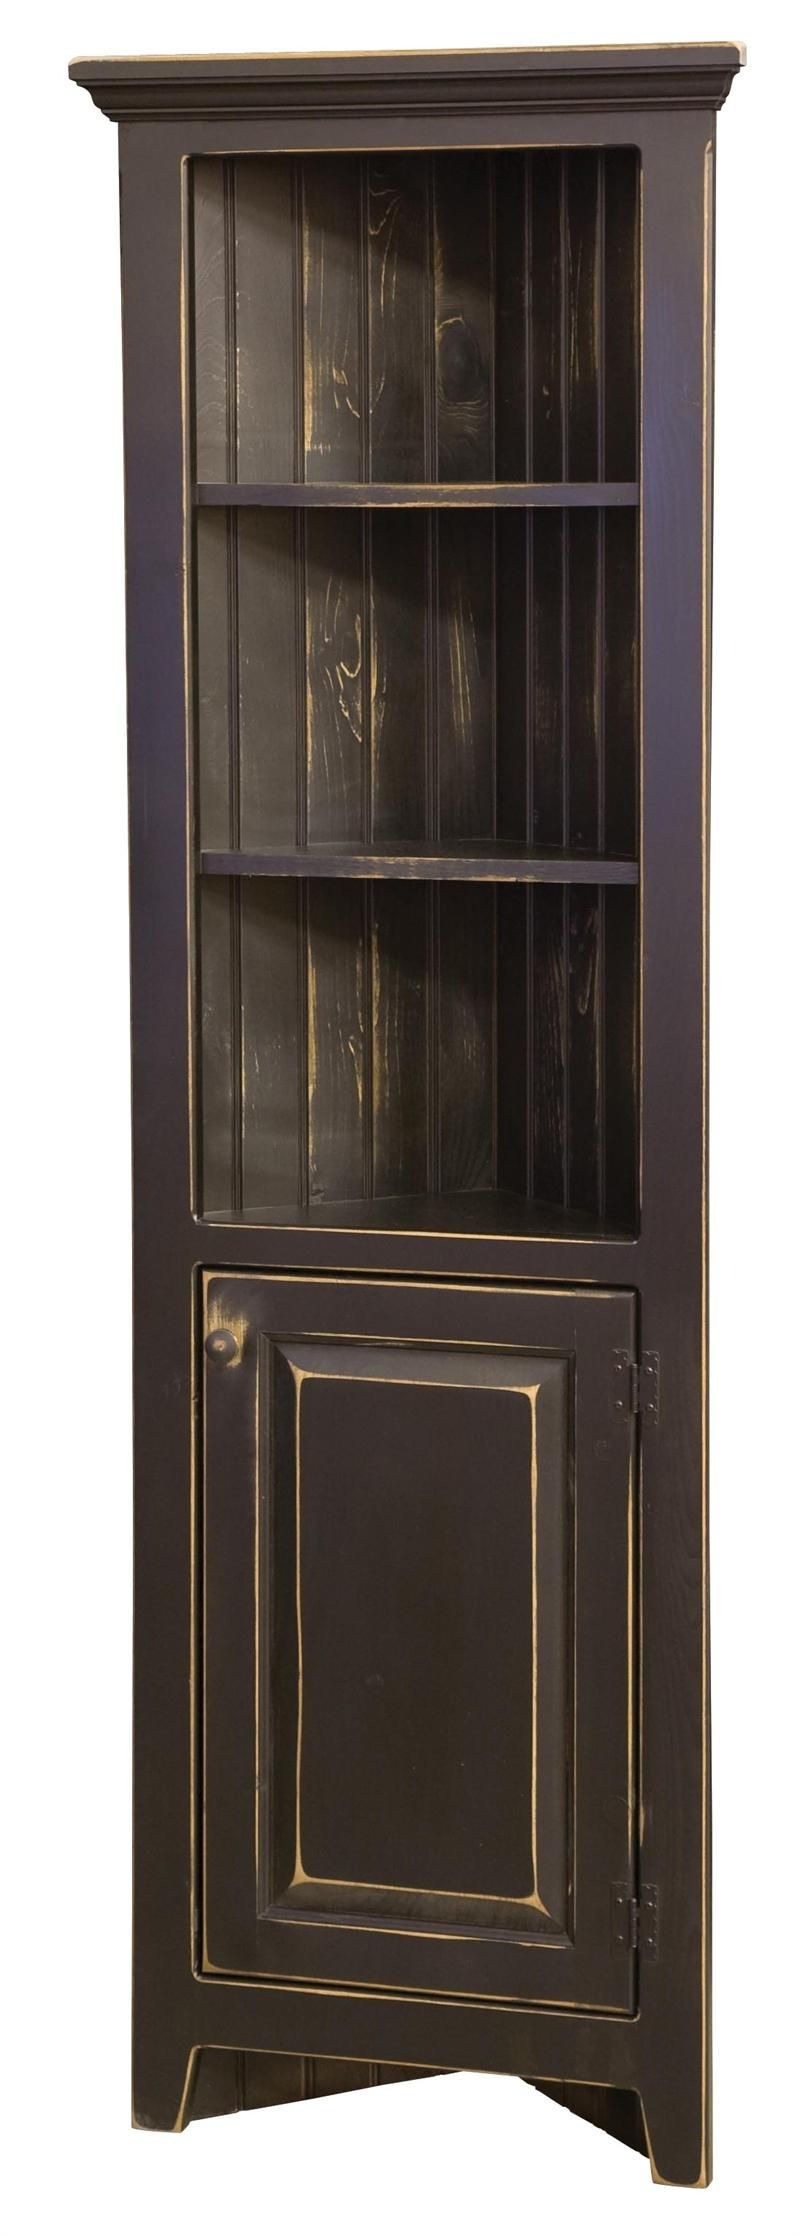 Amish Cabinet Doors Black Corner Cabinet Furniture Home Dining Room Curio